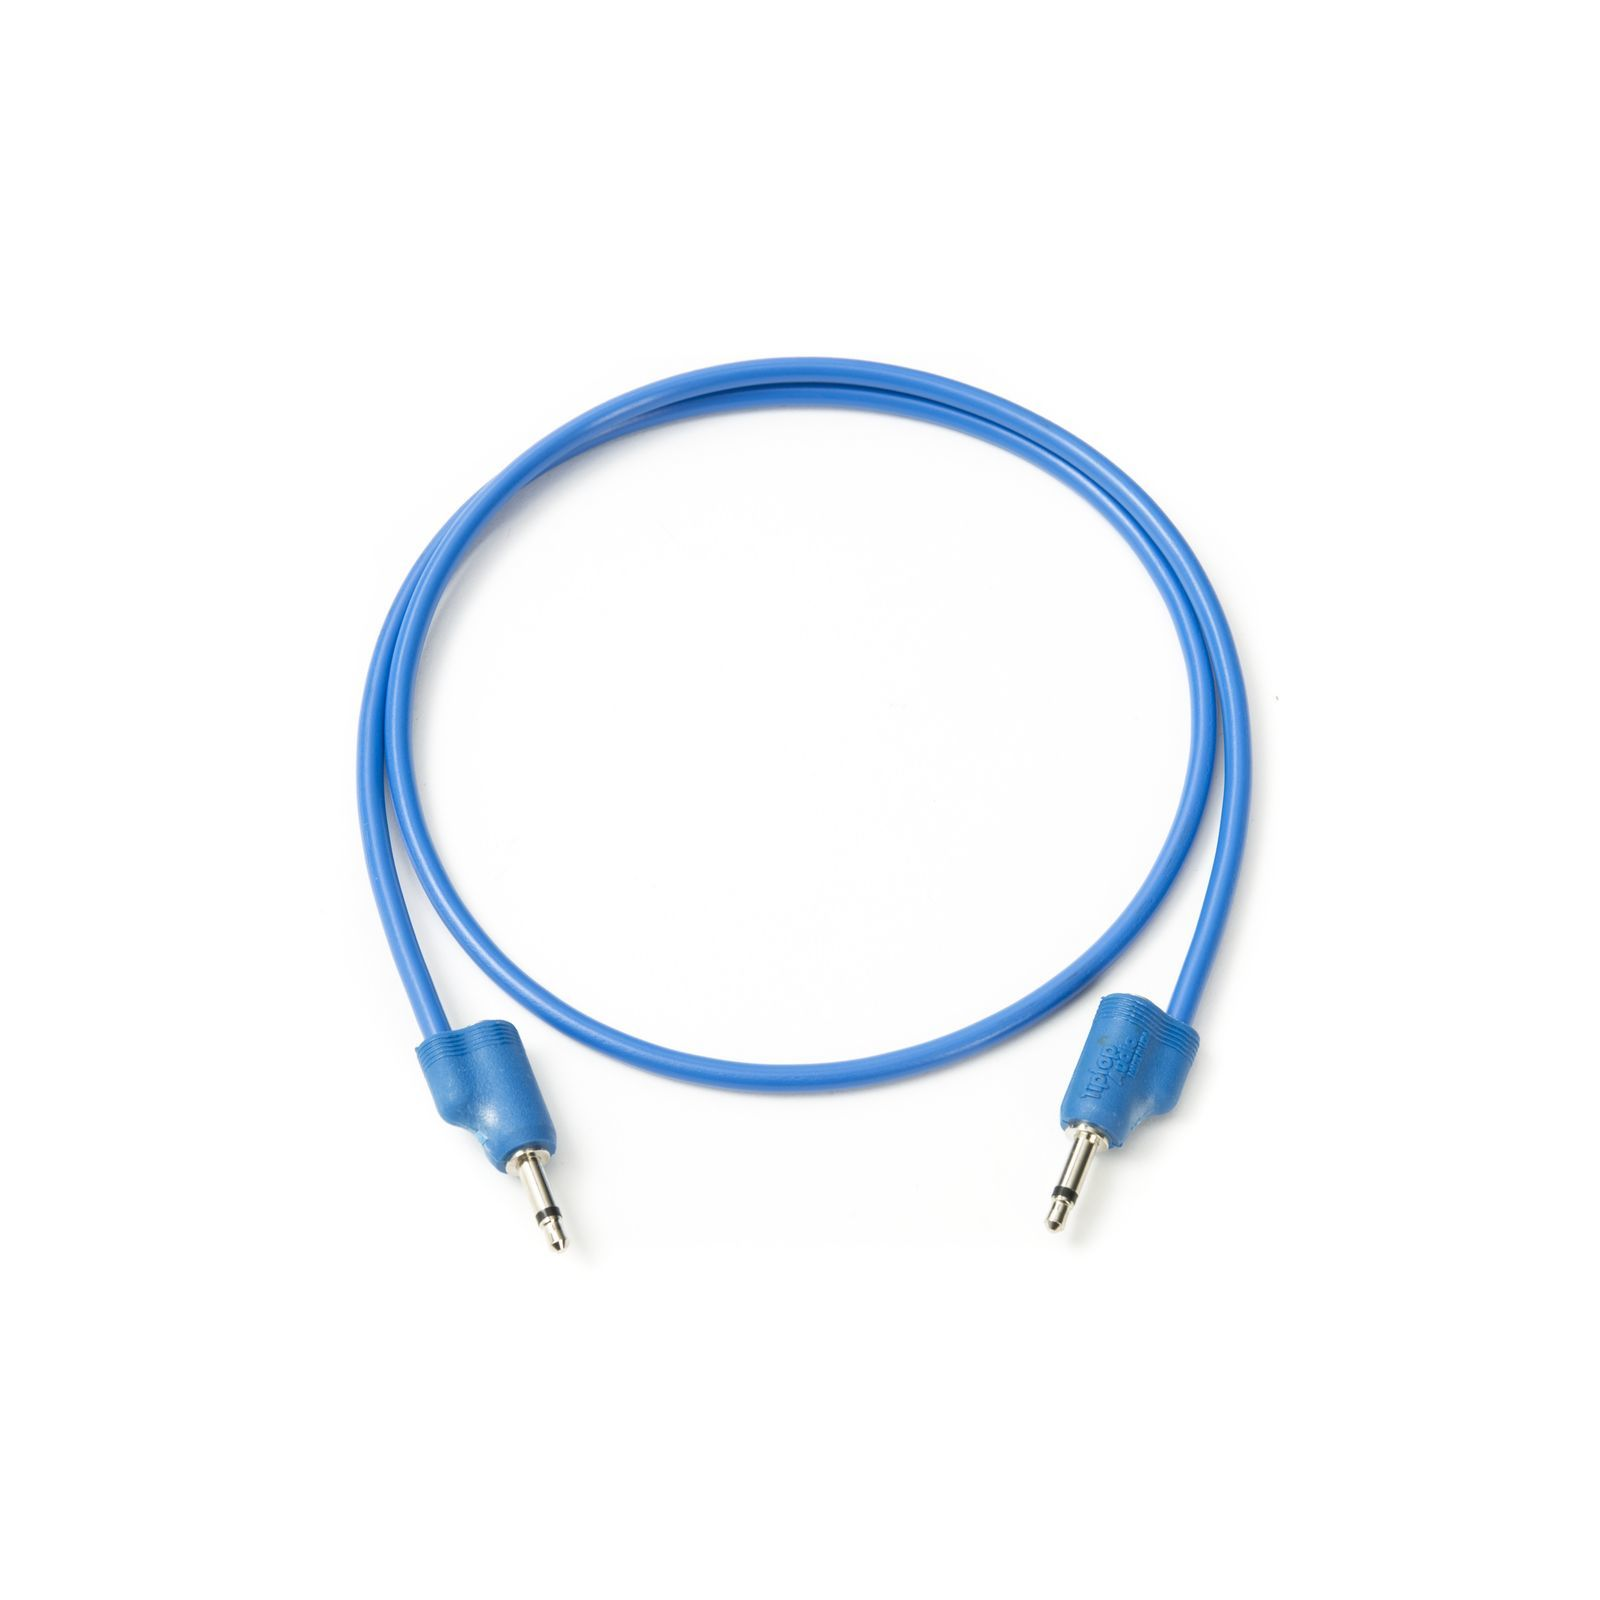 Tiptop Audio Blue Stackcables Product Image